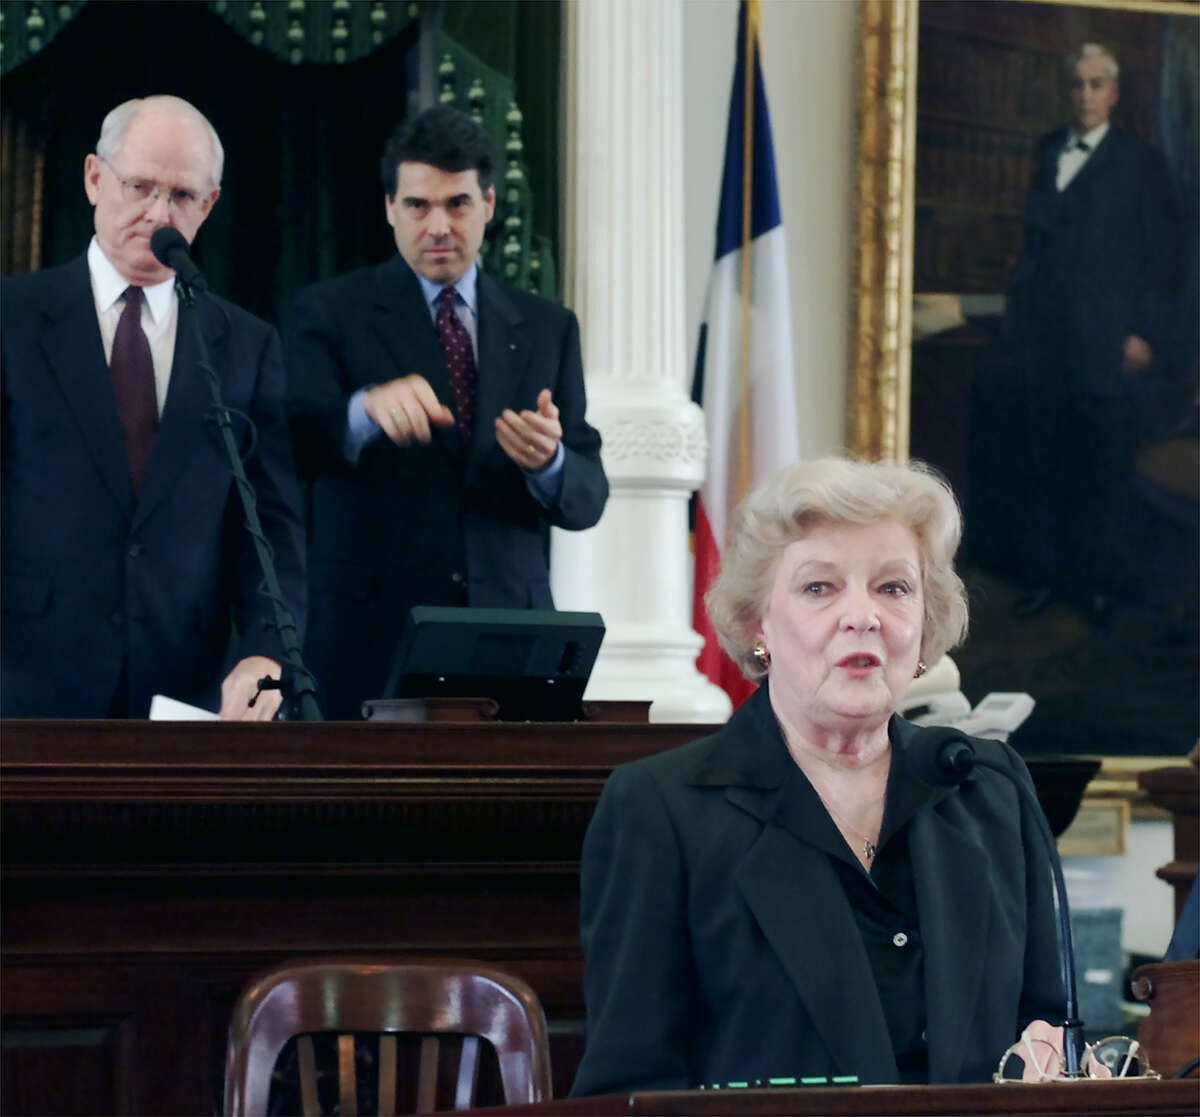 Betty King, foreground, Secretary of the Texas Senate, prepares to speak to members of the Senate during ceremonies honoring her Thursday, April 26, 2001, in Austin, Texas. Applauding in the background are acting Lt. Gov. Bill Ratliff, left, and Gov. Rick Perry.